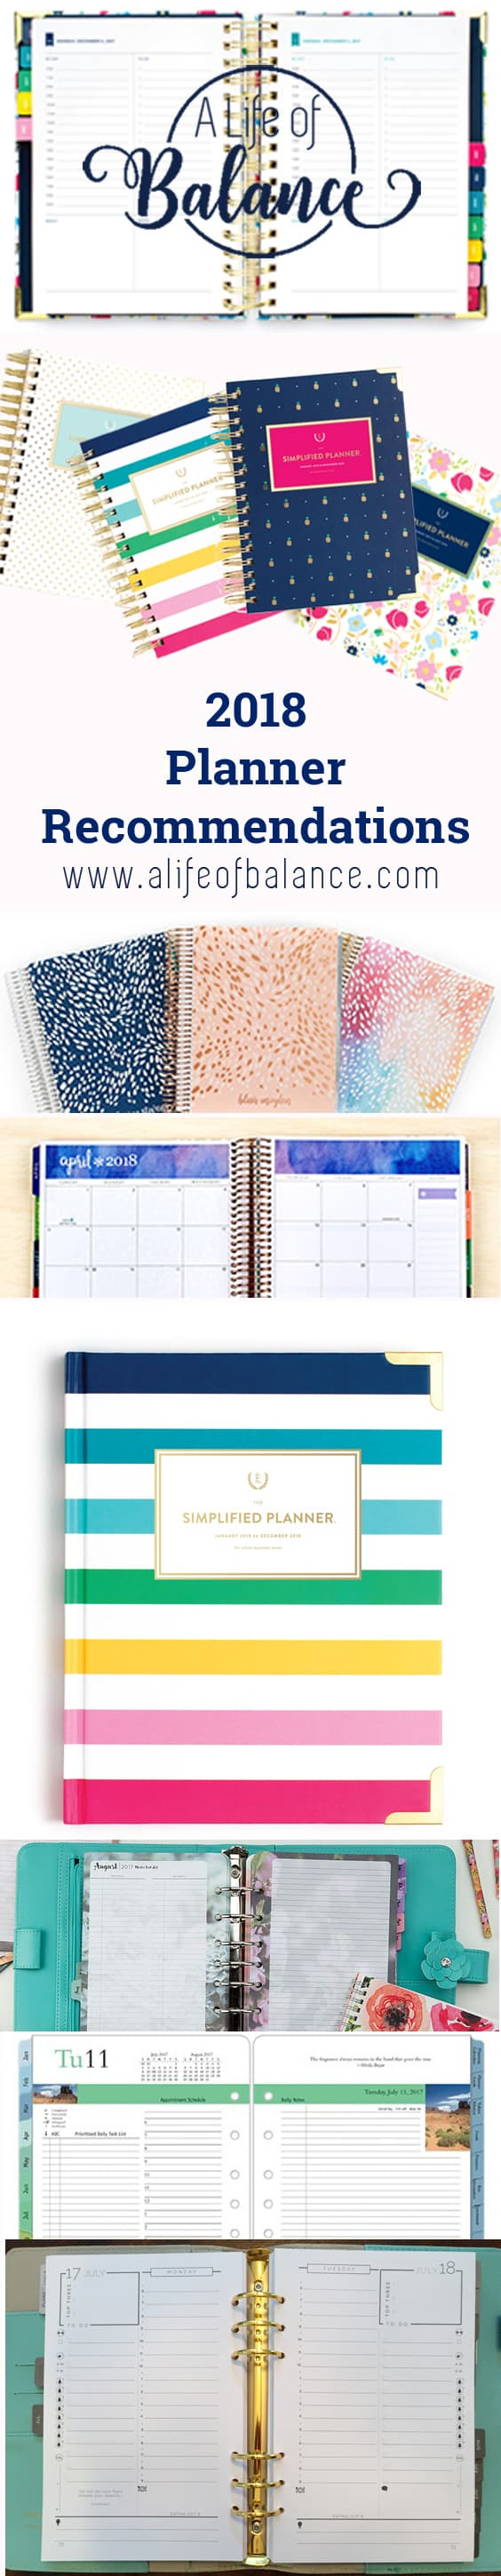 long pin image of several planner with article title - 2018 Planner Recommendations www.alifeofbalance.com